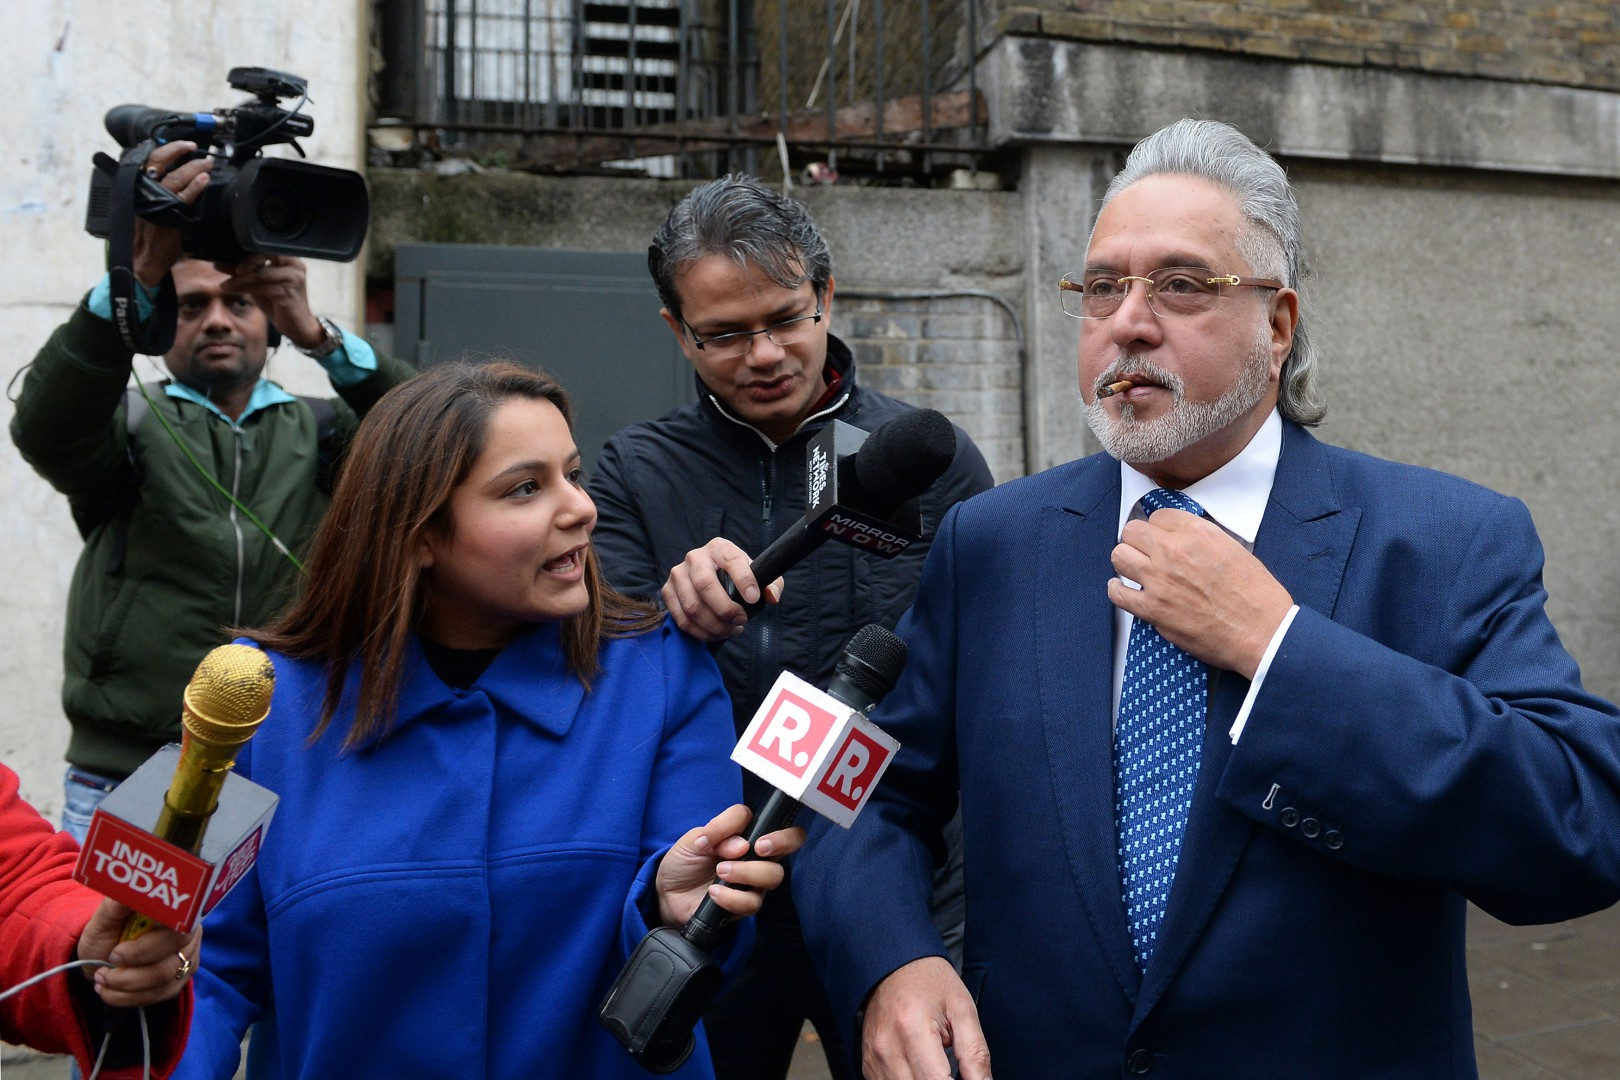 Indian business tycoon Vijay Mallya, who is wanted in his home country over fraud allegations, arrives at Westminster Magistrates' Court in London for his extradition hearing. PRESS ASSOCIATION Photo. Picture date: Thursday December 7, 2017. See PA story COURTS Mallya. Photo credit should read: Joe Giddens/PA Wire